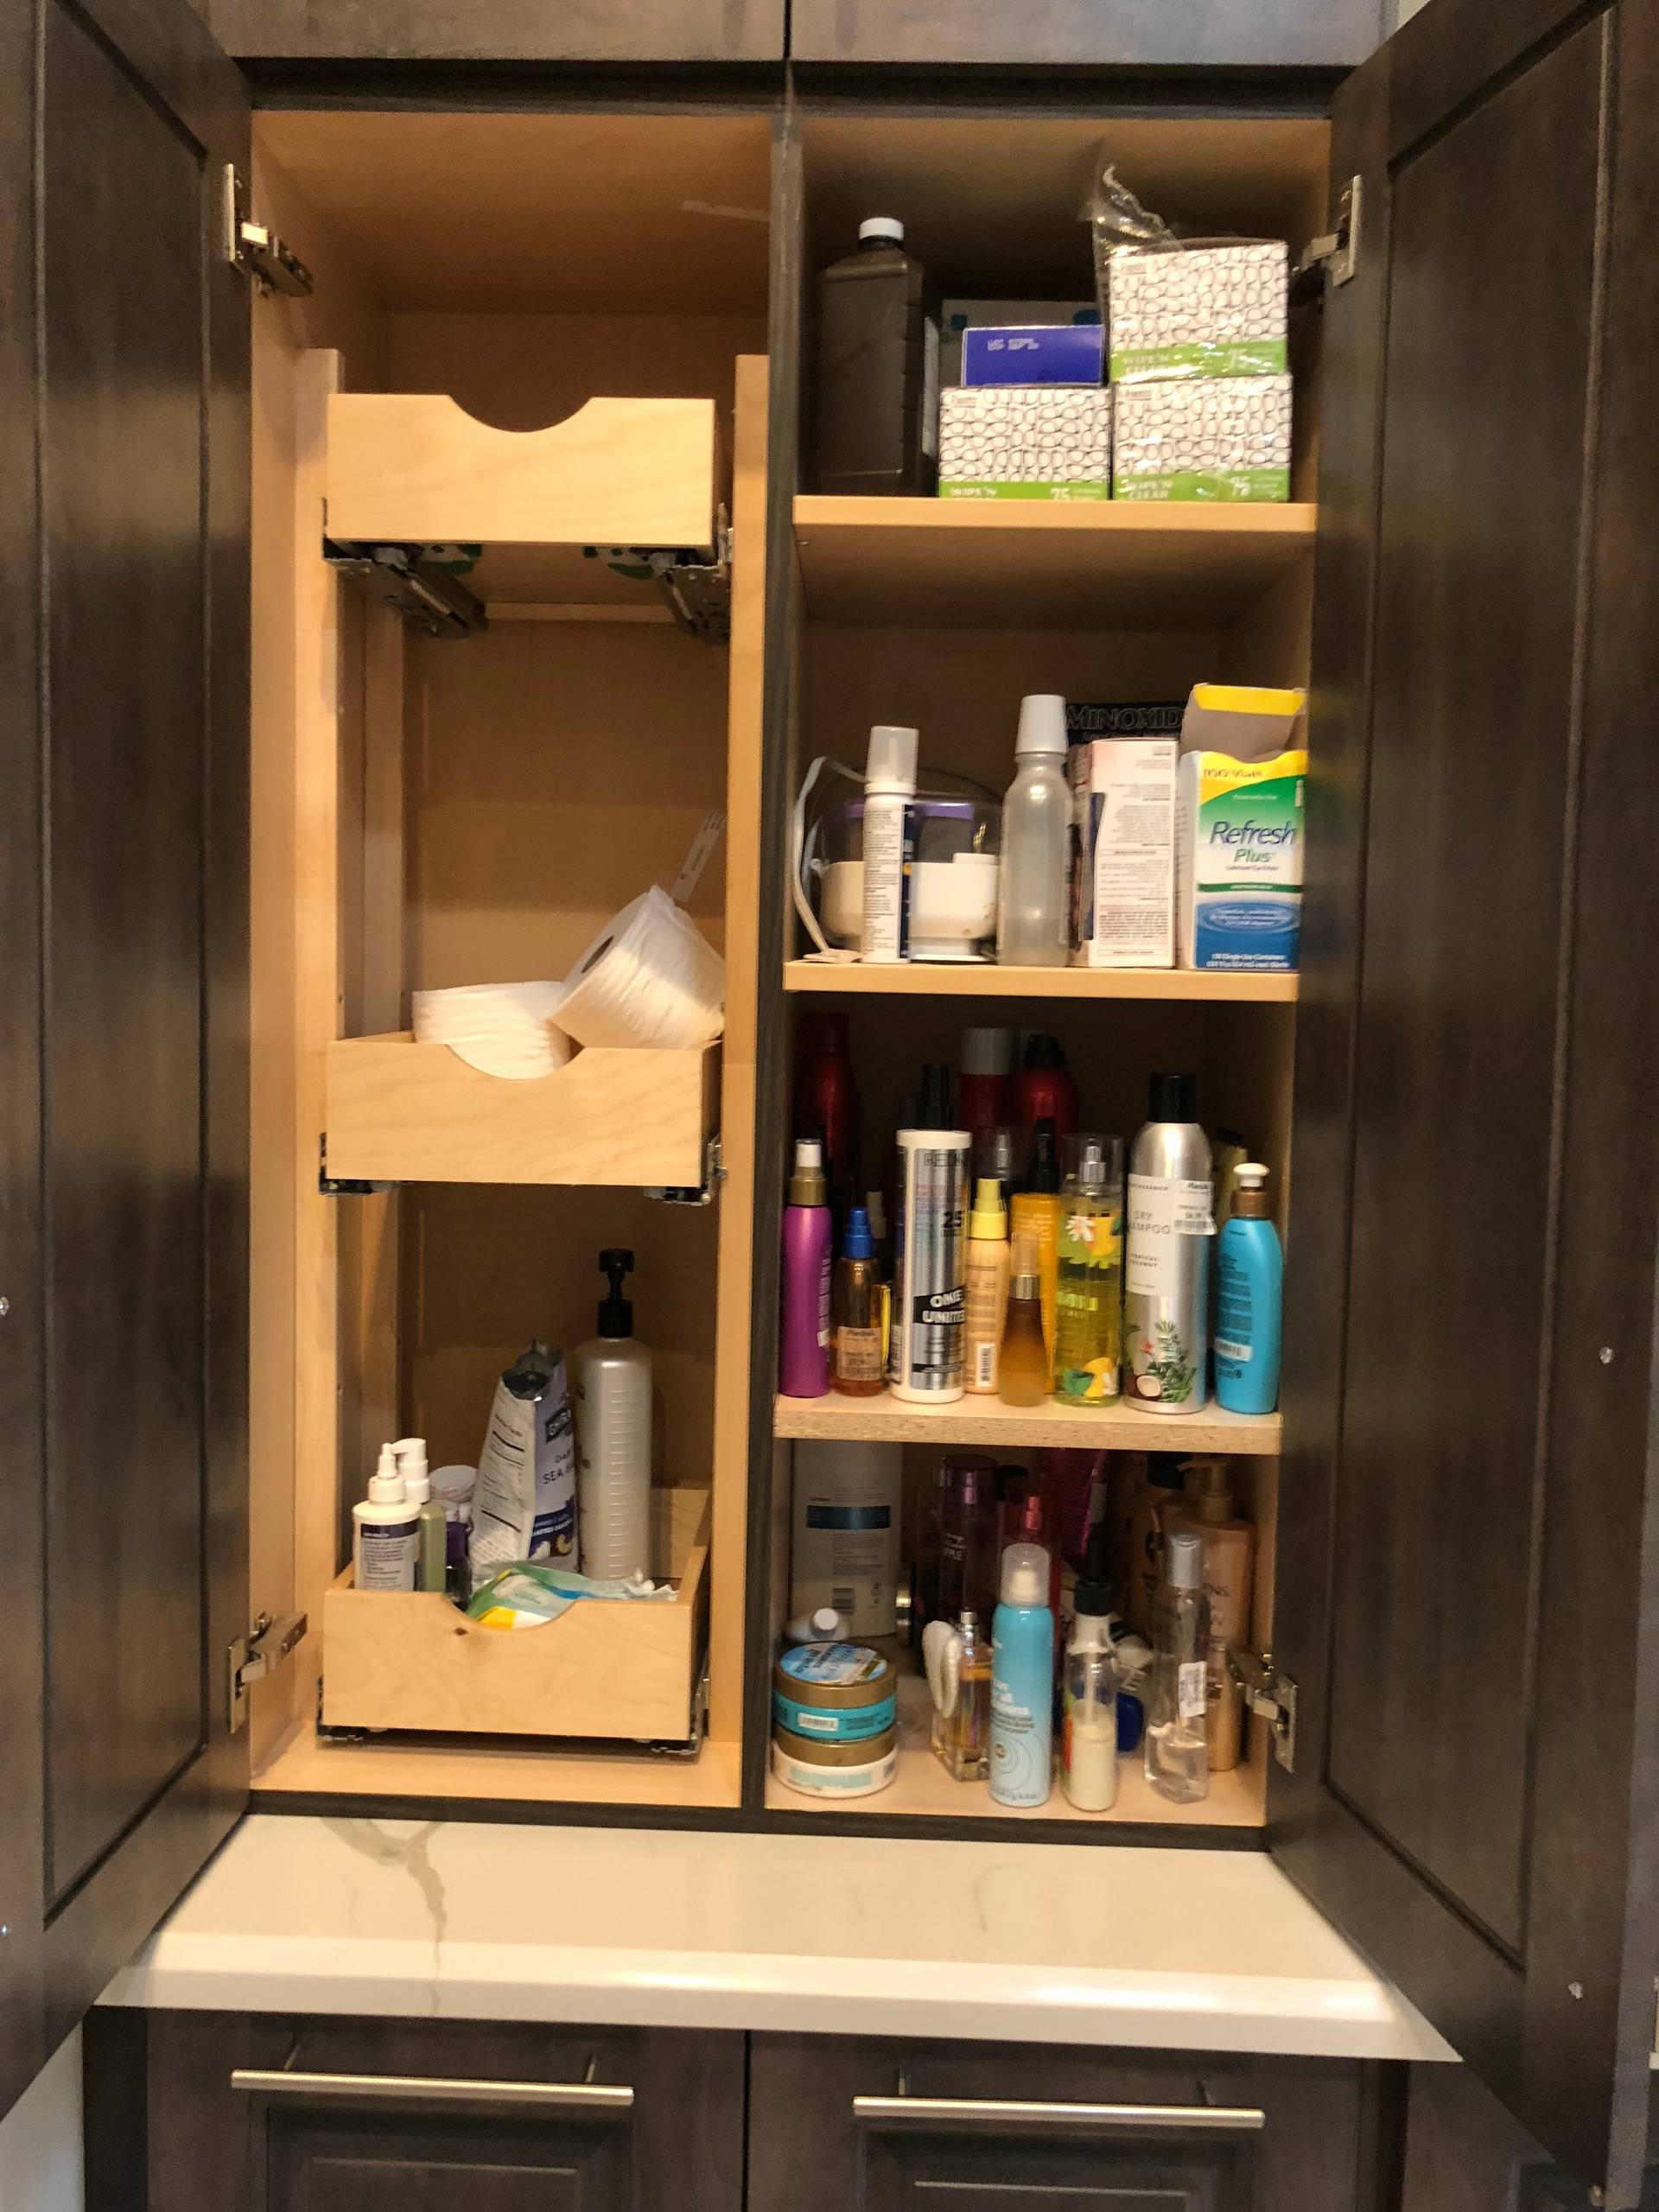 Bathroom cabinet organizer and pullouts